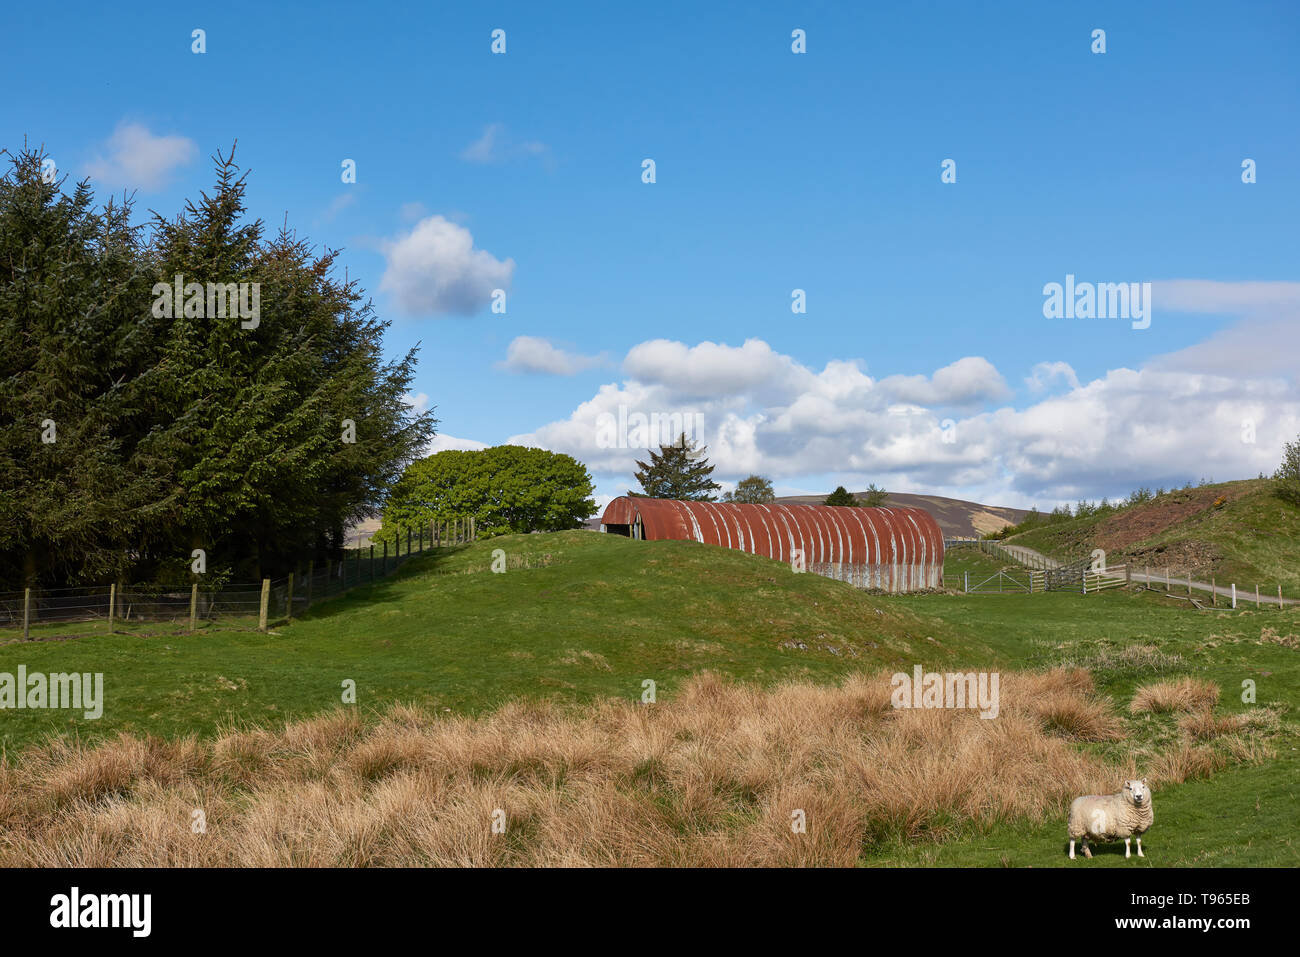 A rusty galvanised tin Farm building high up in the Angus Glens of Scotland, on a fine Morning in May. Glen Prosen, Scotland. - Stock Image